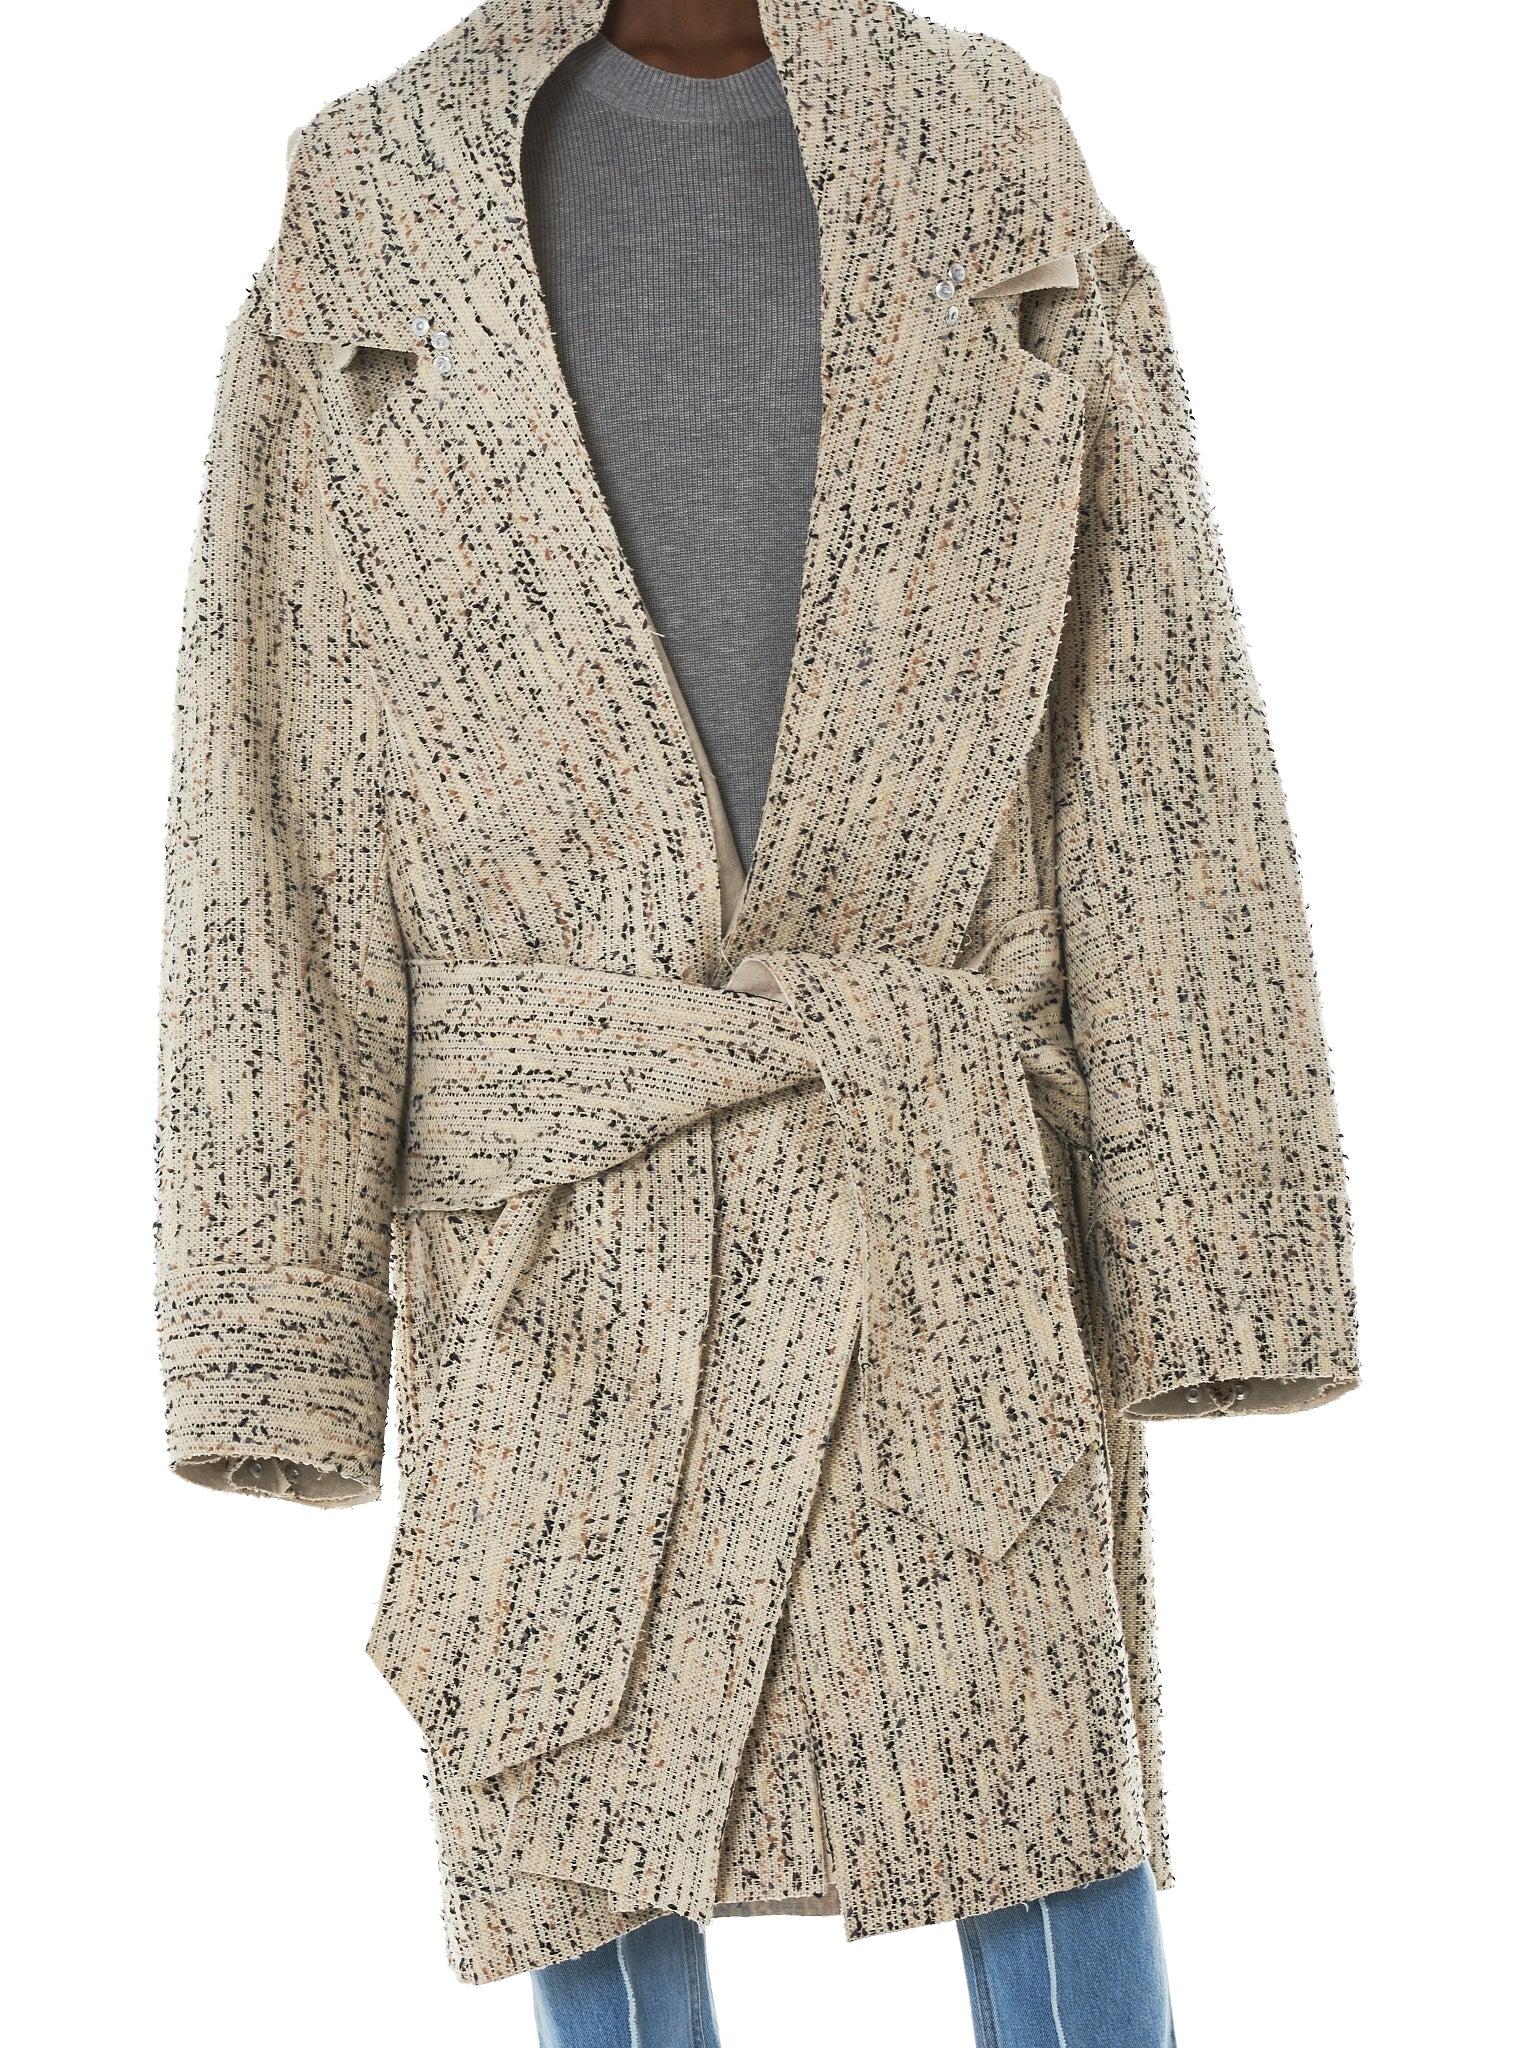 Daniel Gregory Natale Wrap Coat - Hlorenzo Detail 1